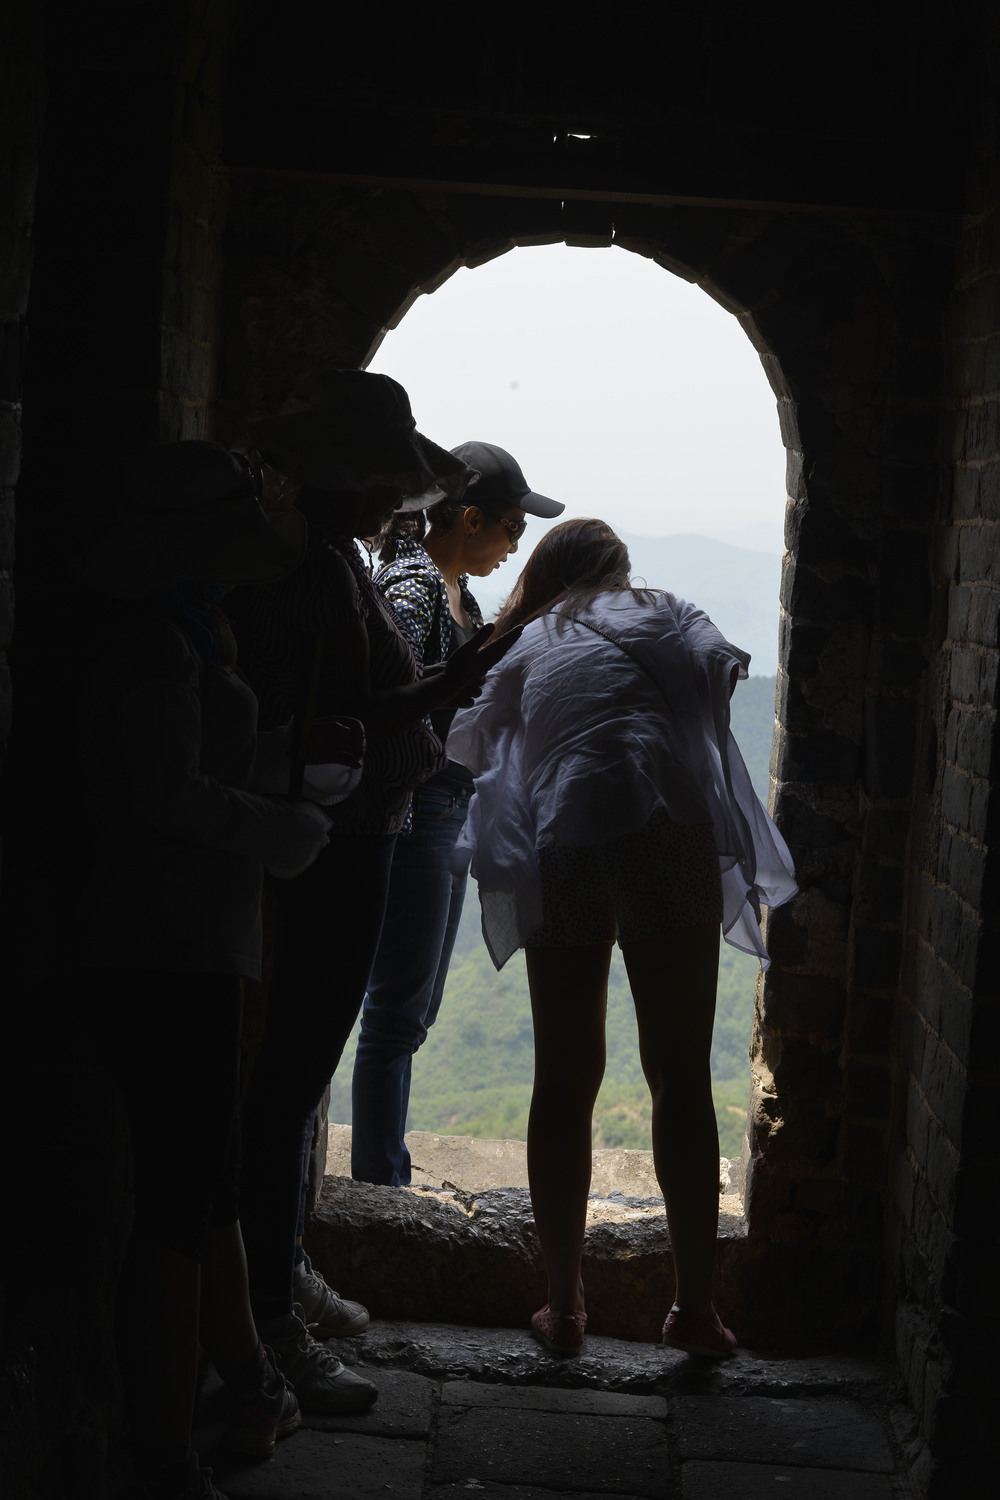 Beijing greatwall fashion photoshoot 4.jpg